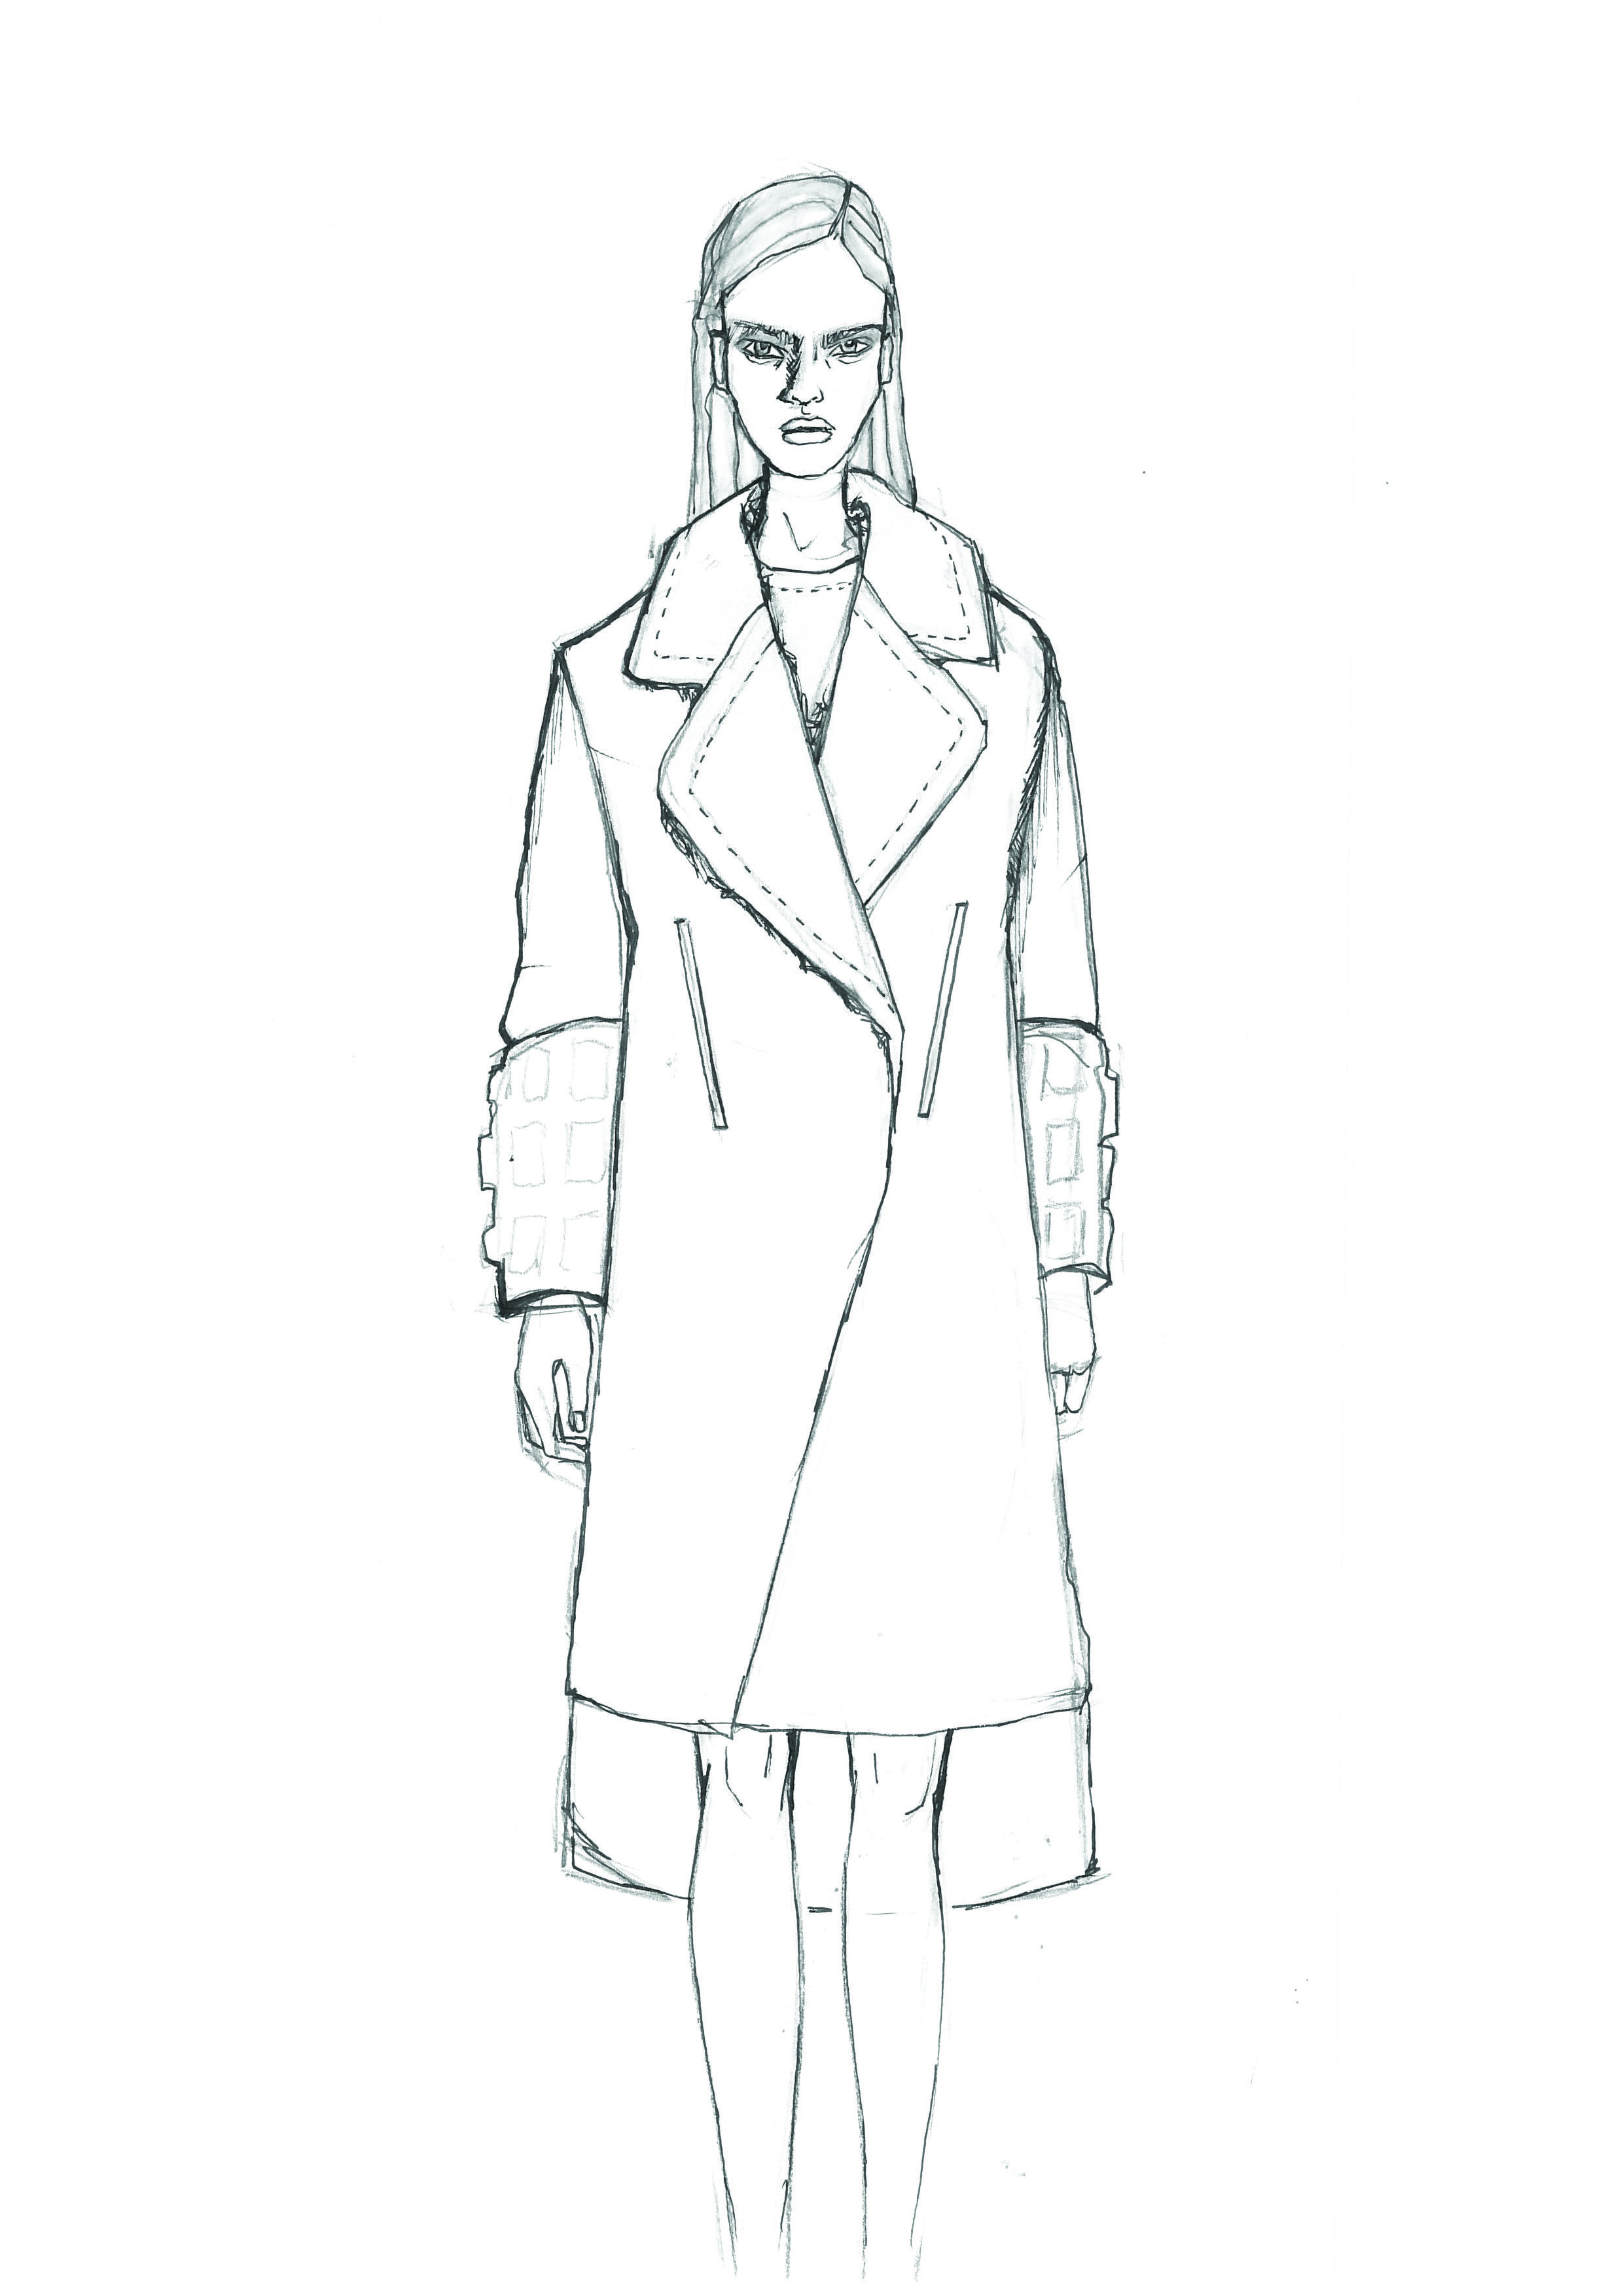 Fashion Illustration _ Design and Sketch by Leana Zimmermann